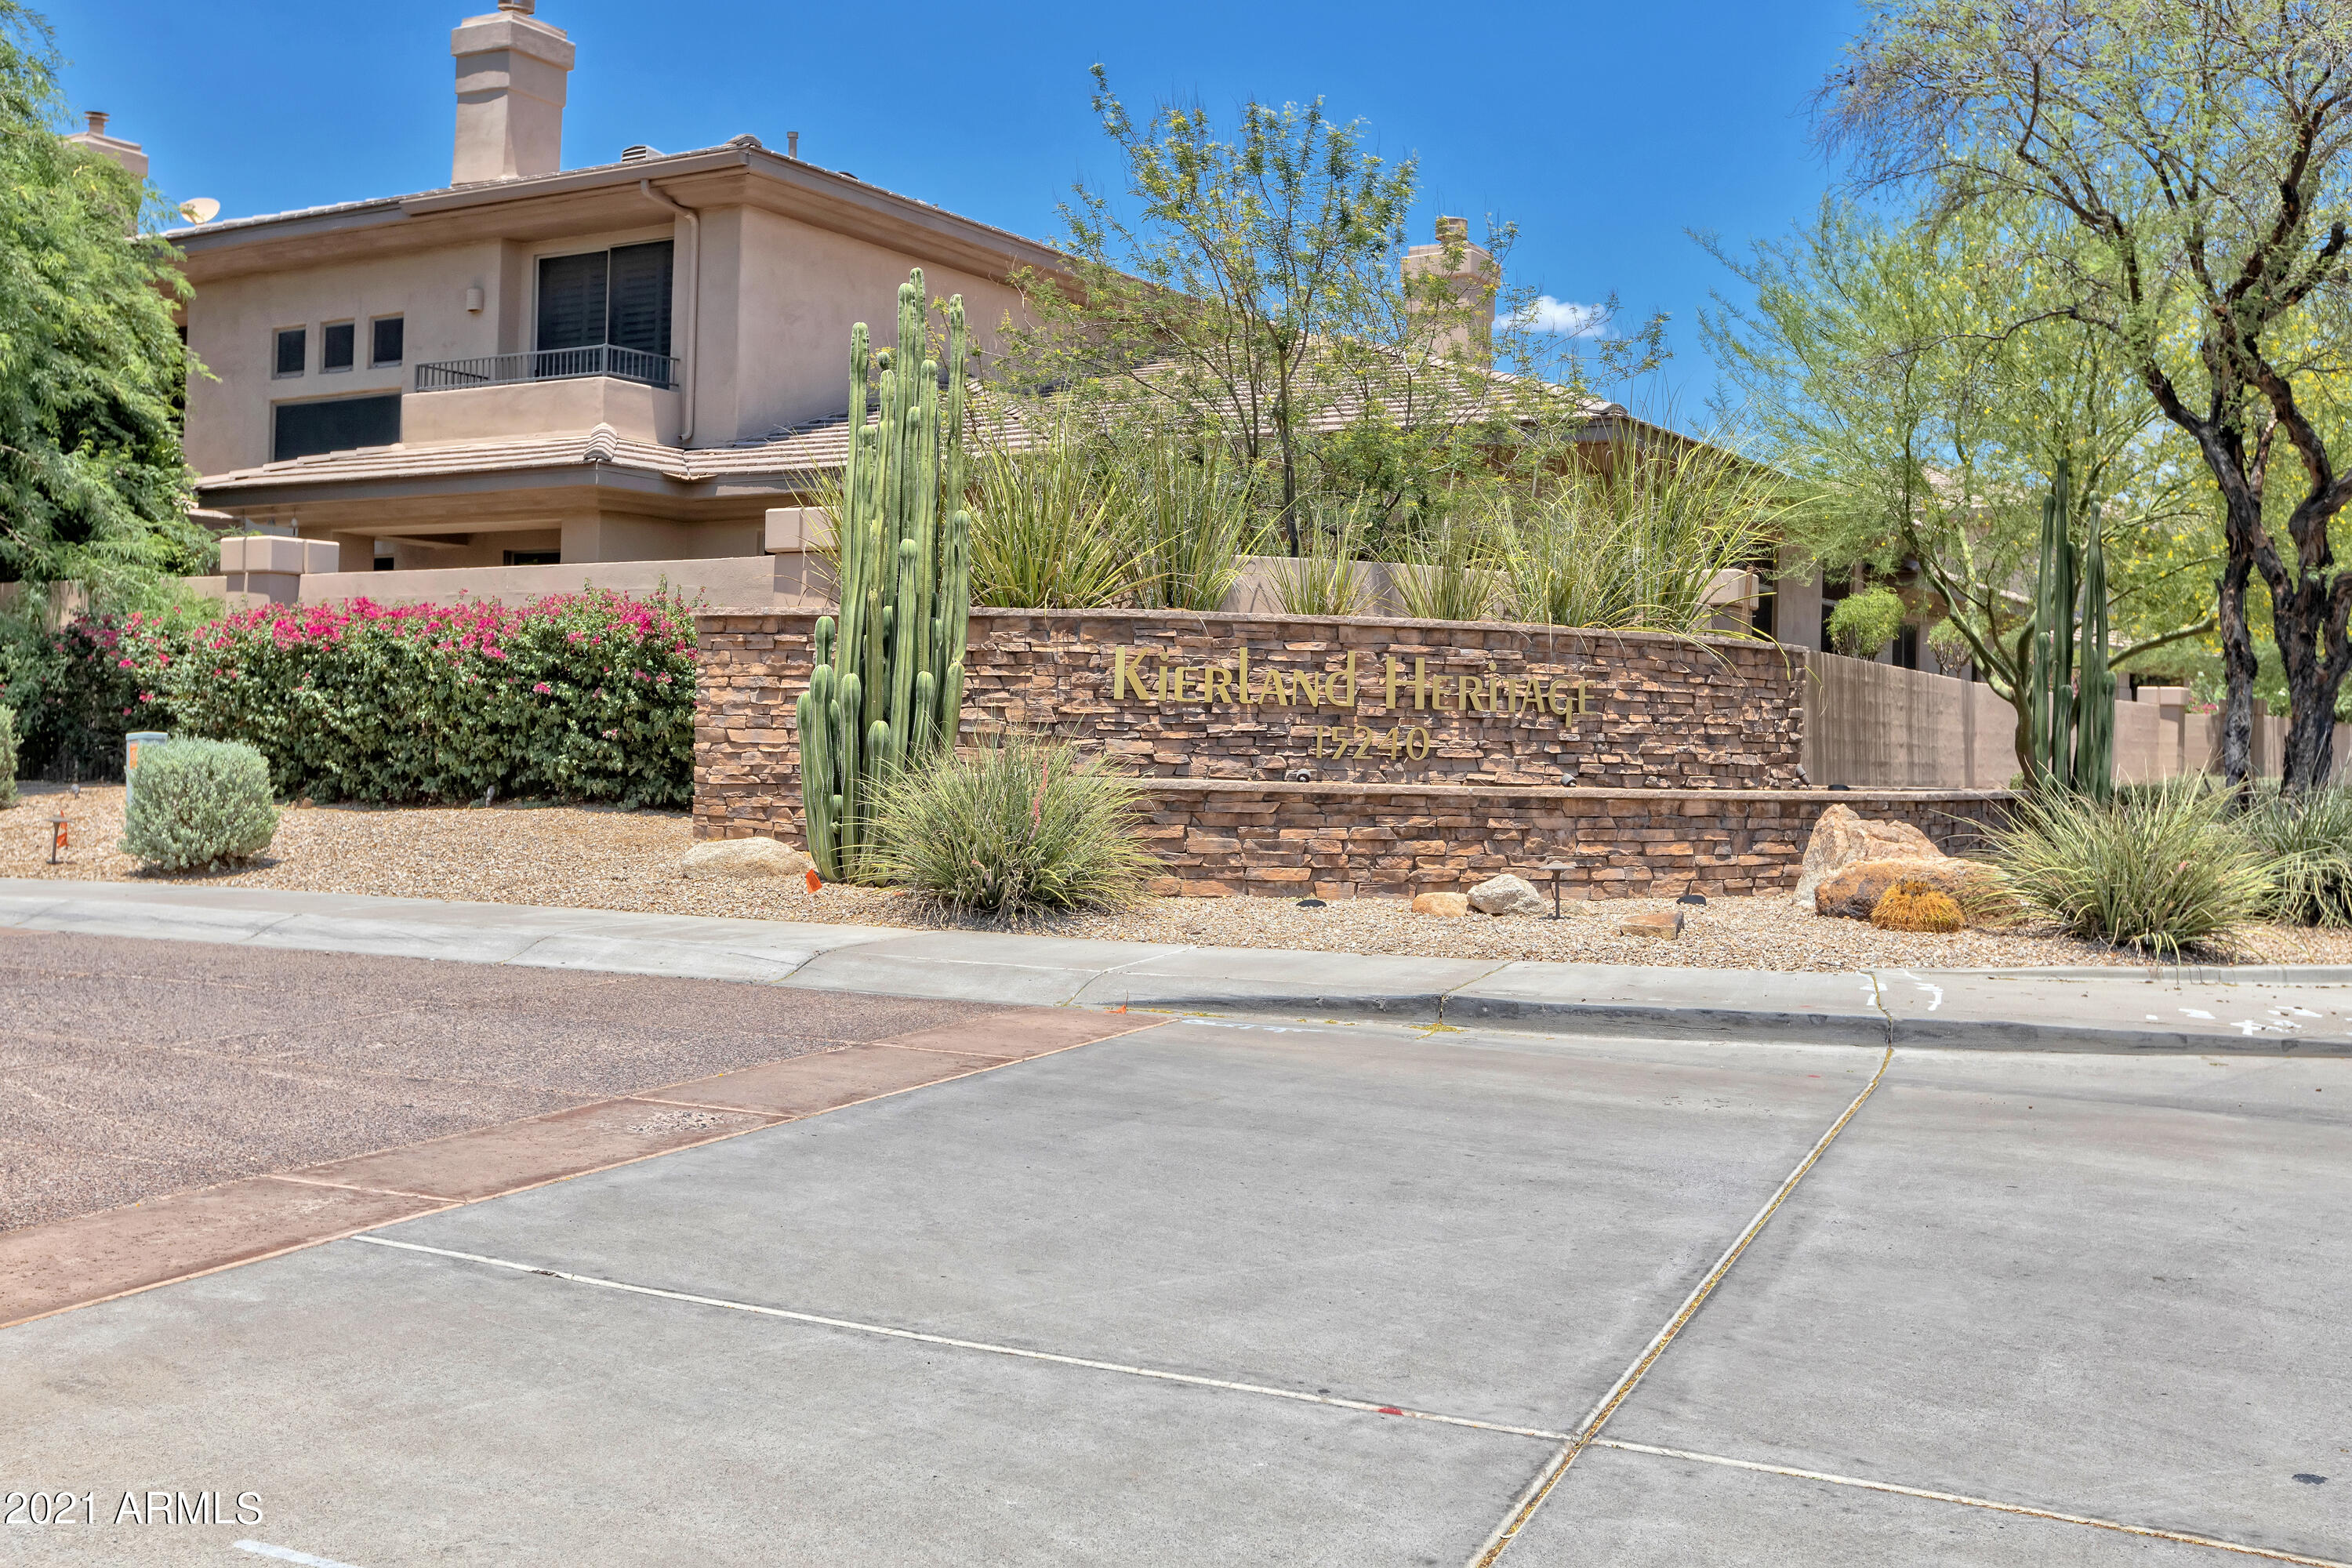 15240 N CLUBGATE Drive # 150, Scottsdale, AZ 85254, 3 Bedrooms Bedrooms, ,Residential Lease,For Rent,15240 N CLUBGATE Drive # 150,6260553